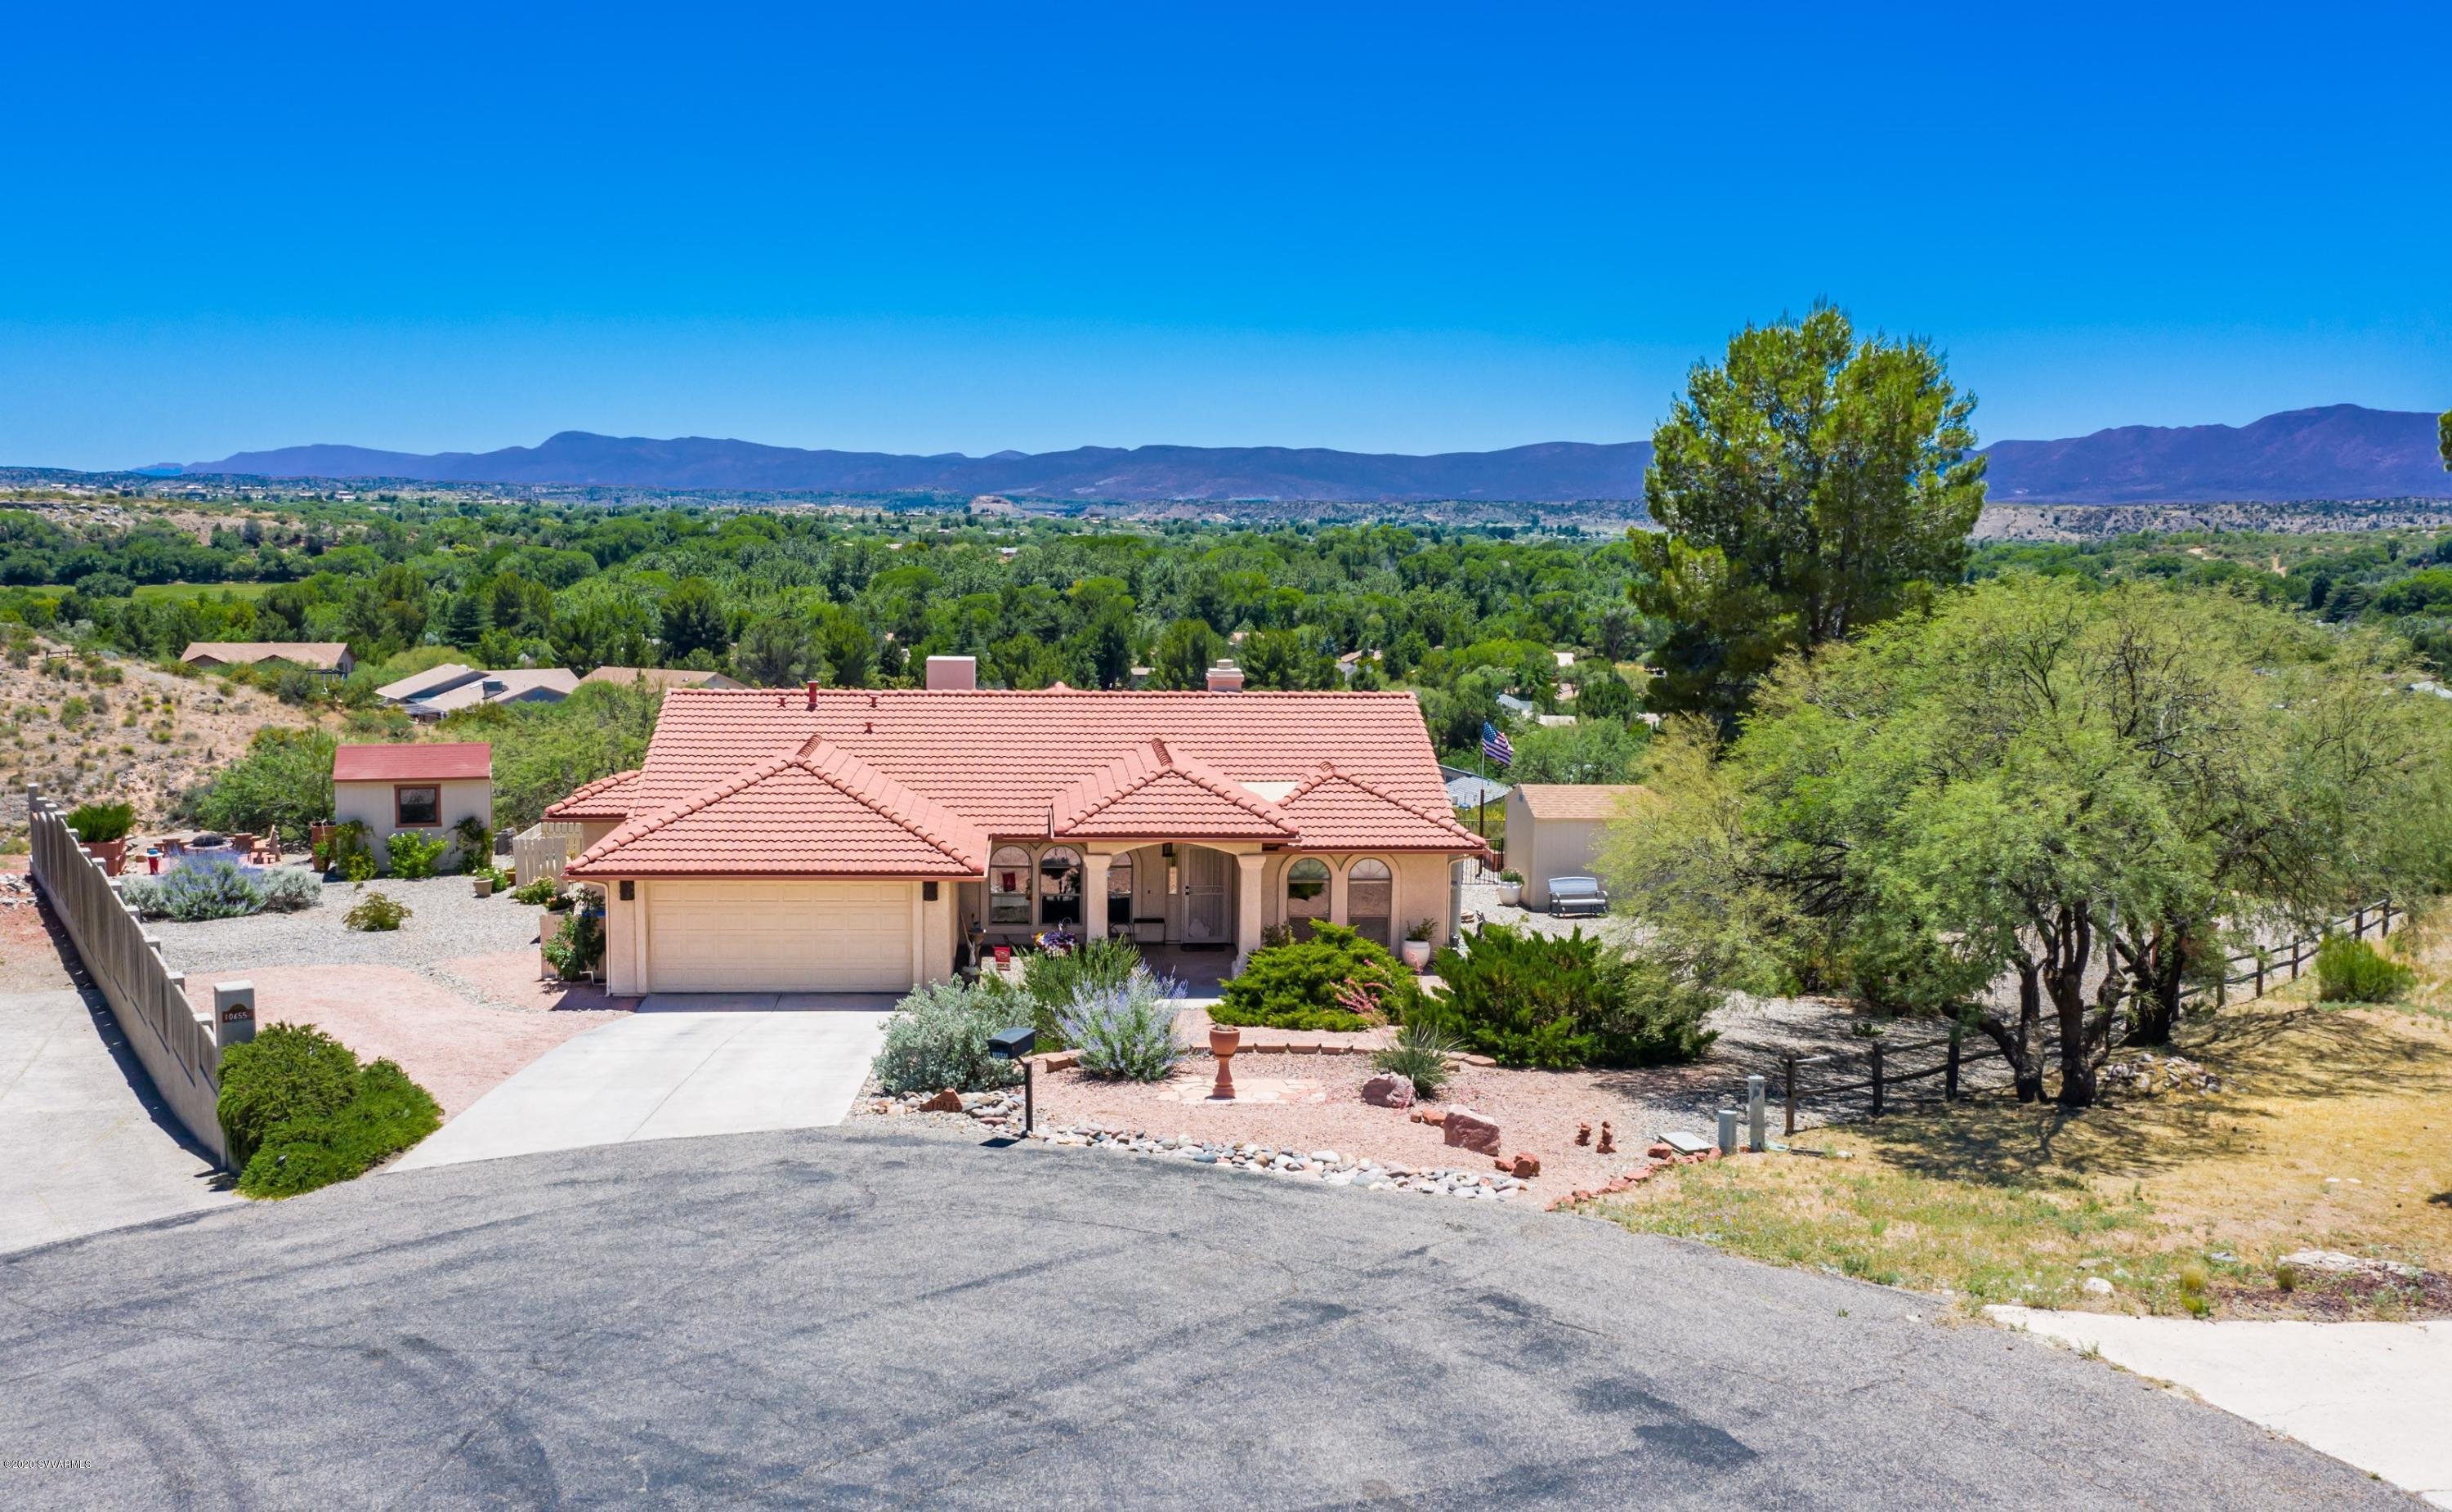 10645 E Saddle Rock Rd Cornville, AZ 86325